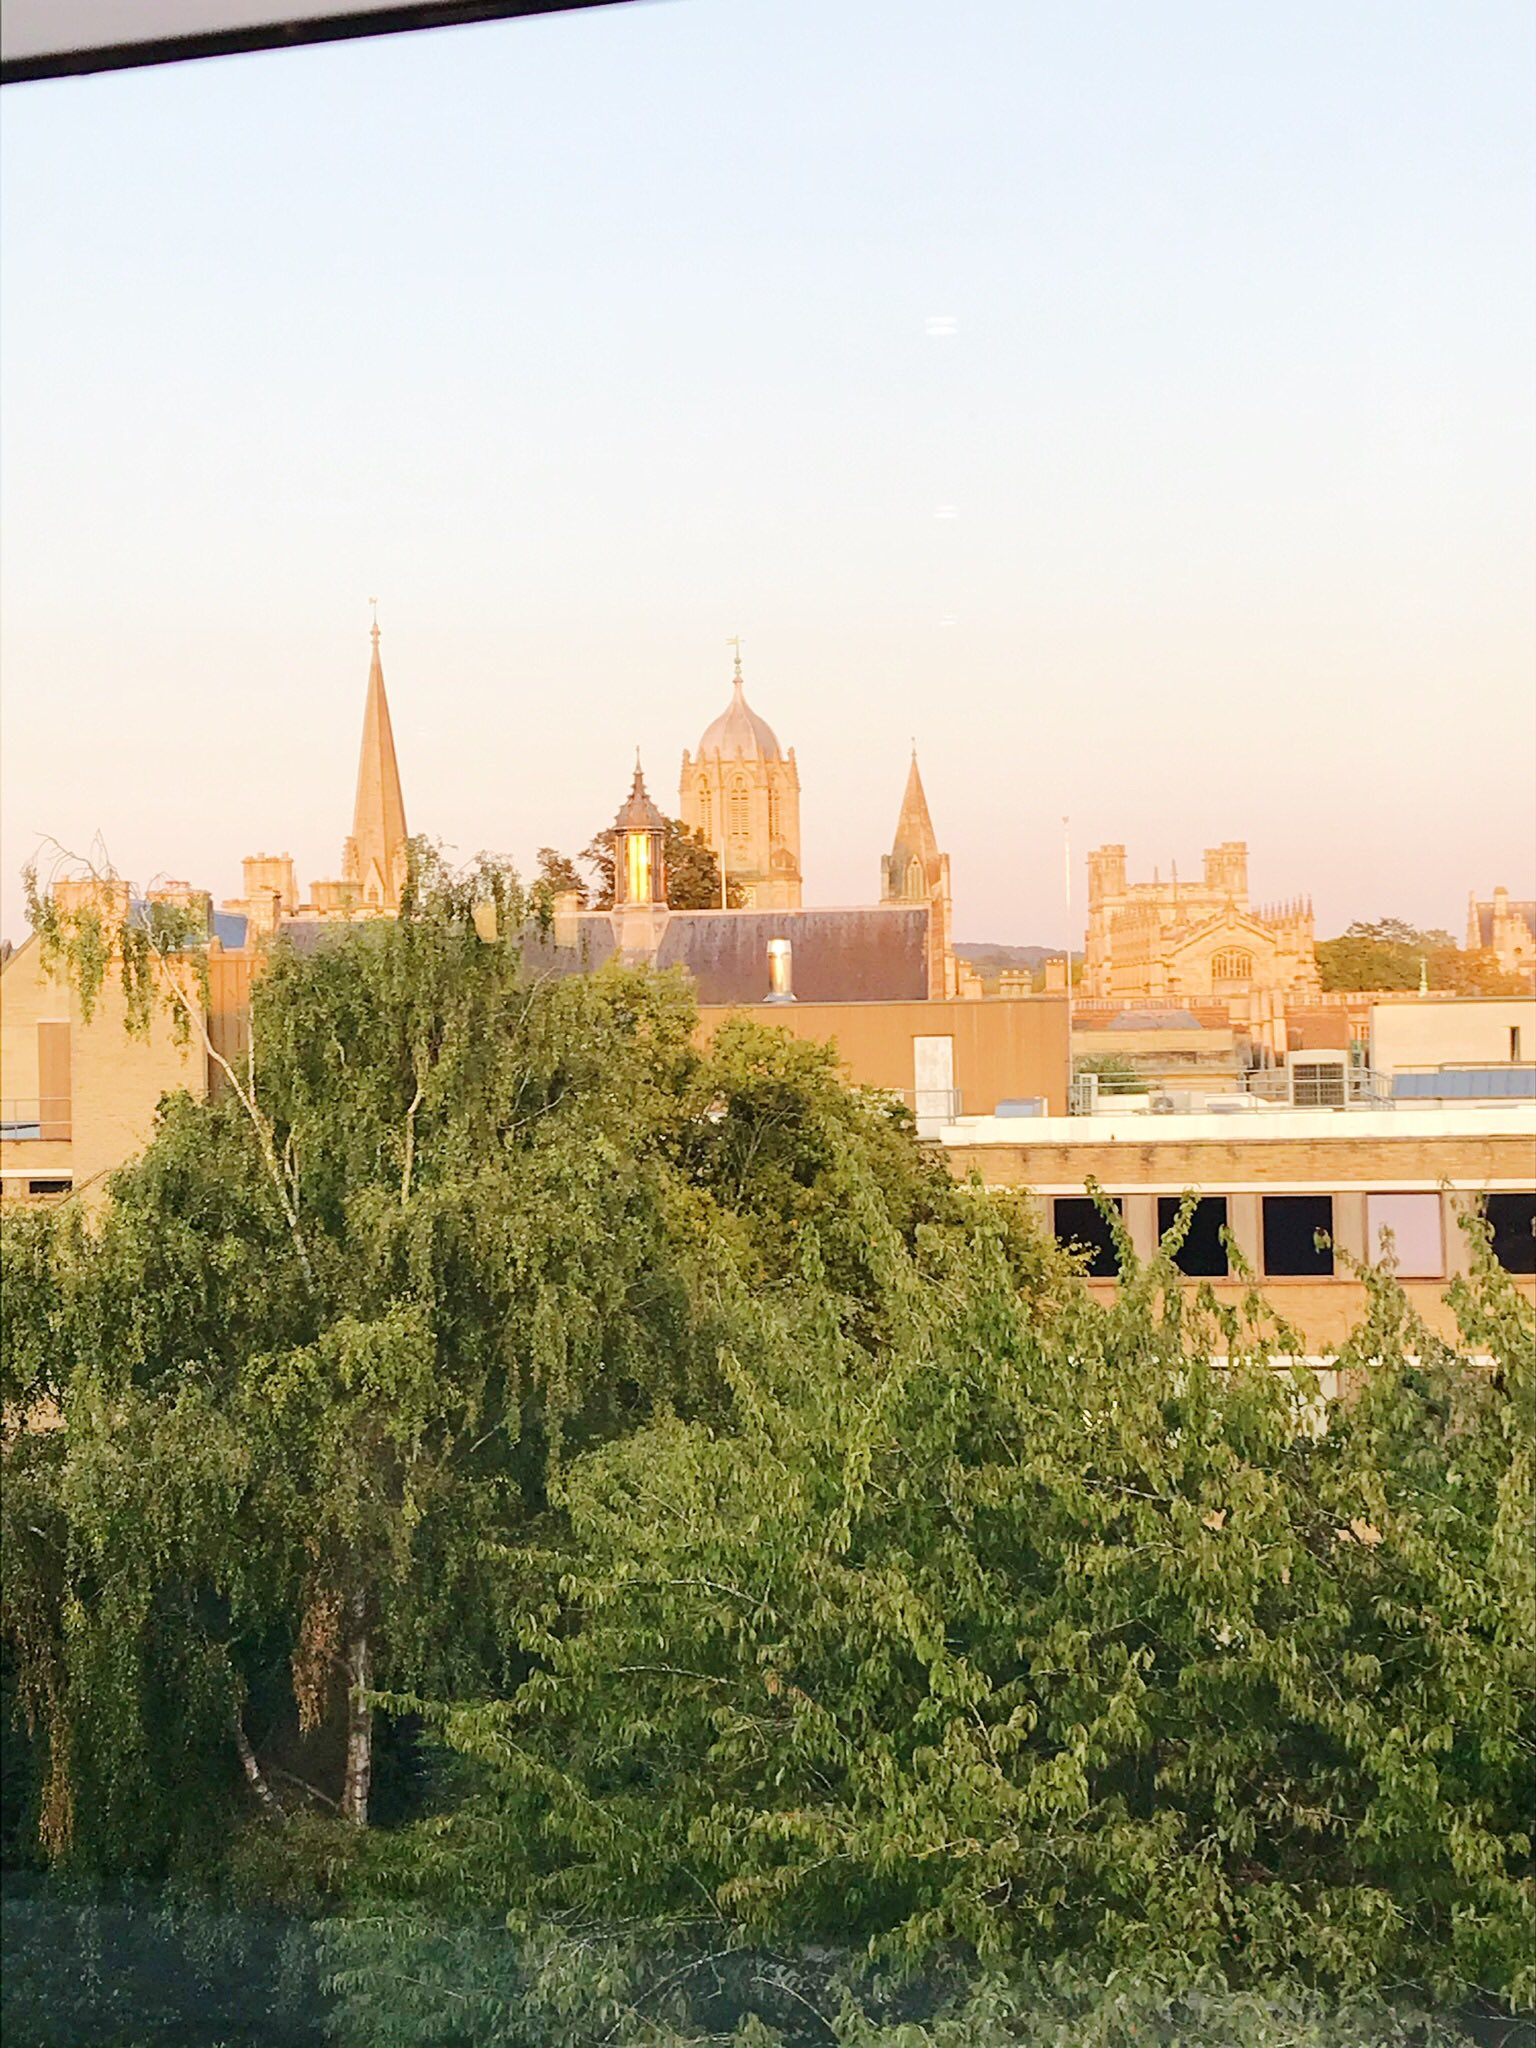 View of Oxford from Westgate Shopping Centre Roof Terrace